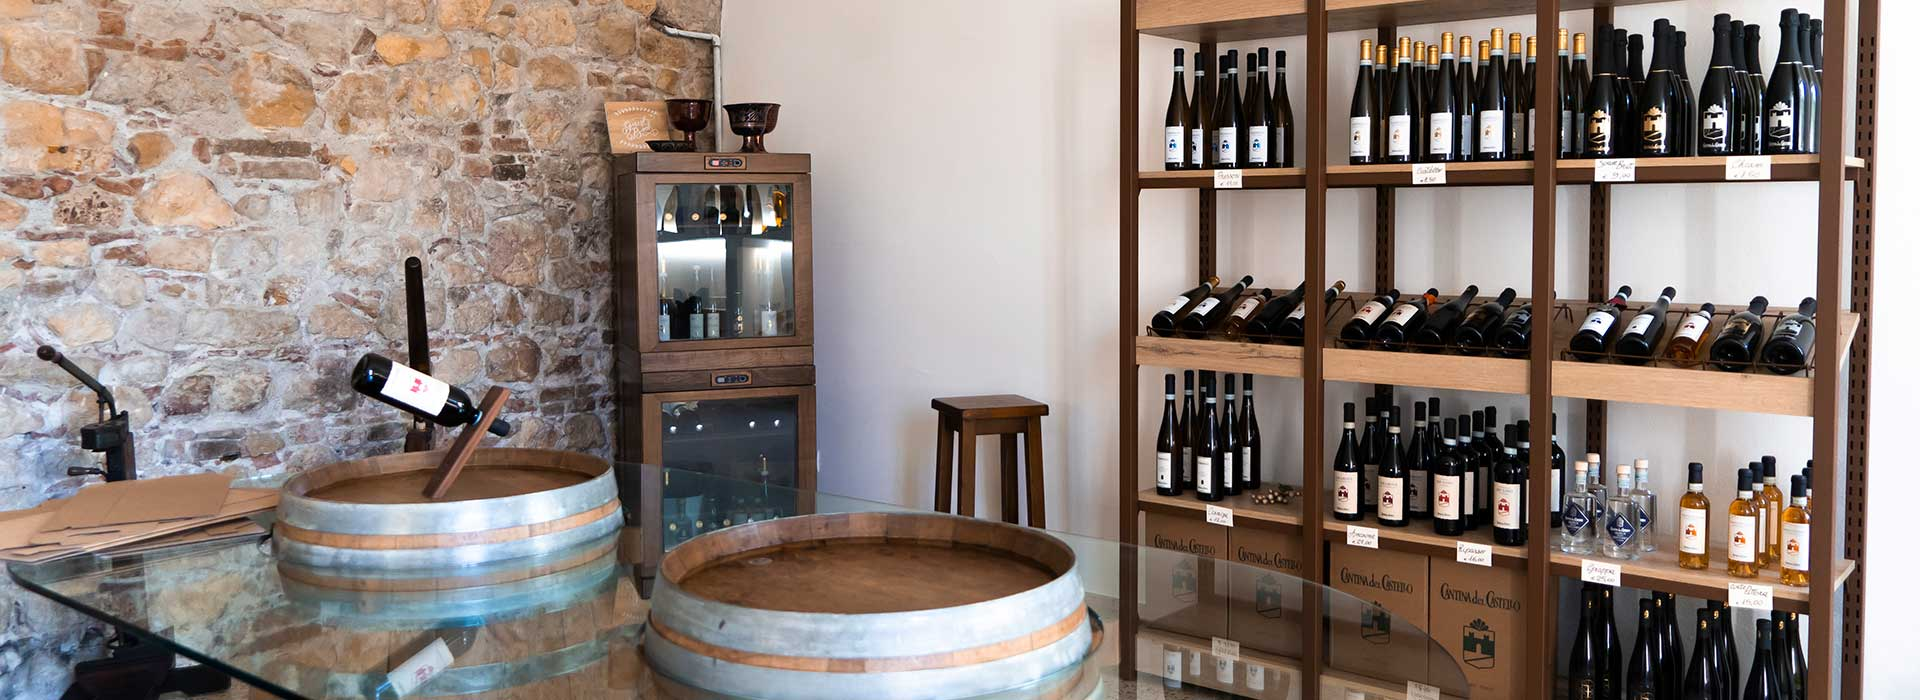 Cantina del Castello - wineshop